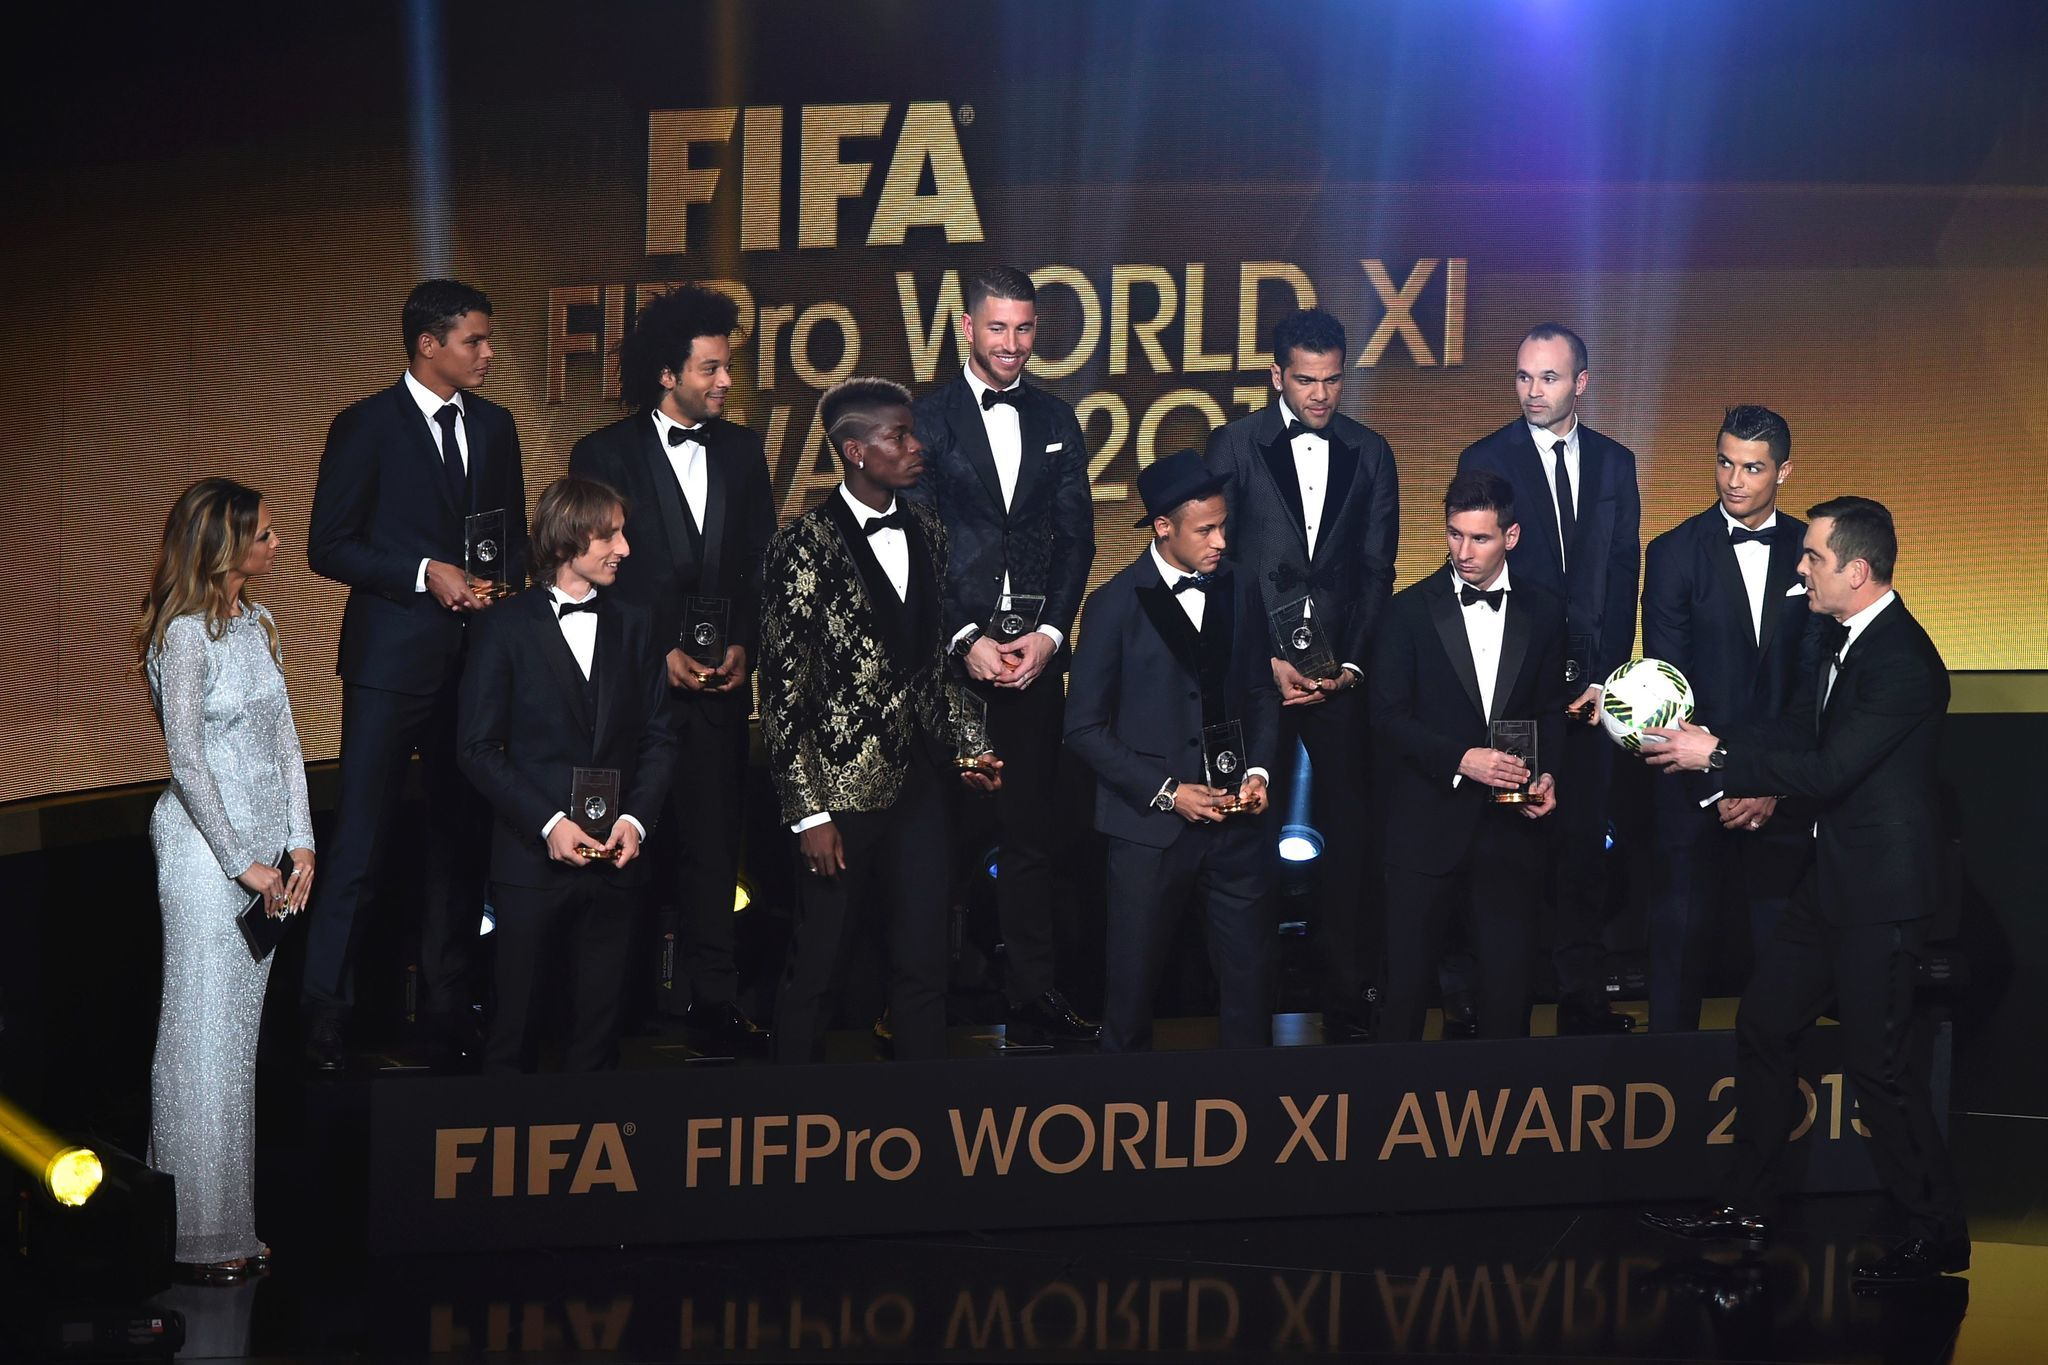 Ct-hoy-12-from-madrid-8-from-barca-3-from-atleti-in-fifa-xi-shortlist-20170920